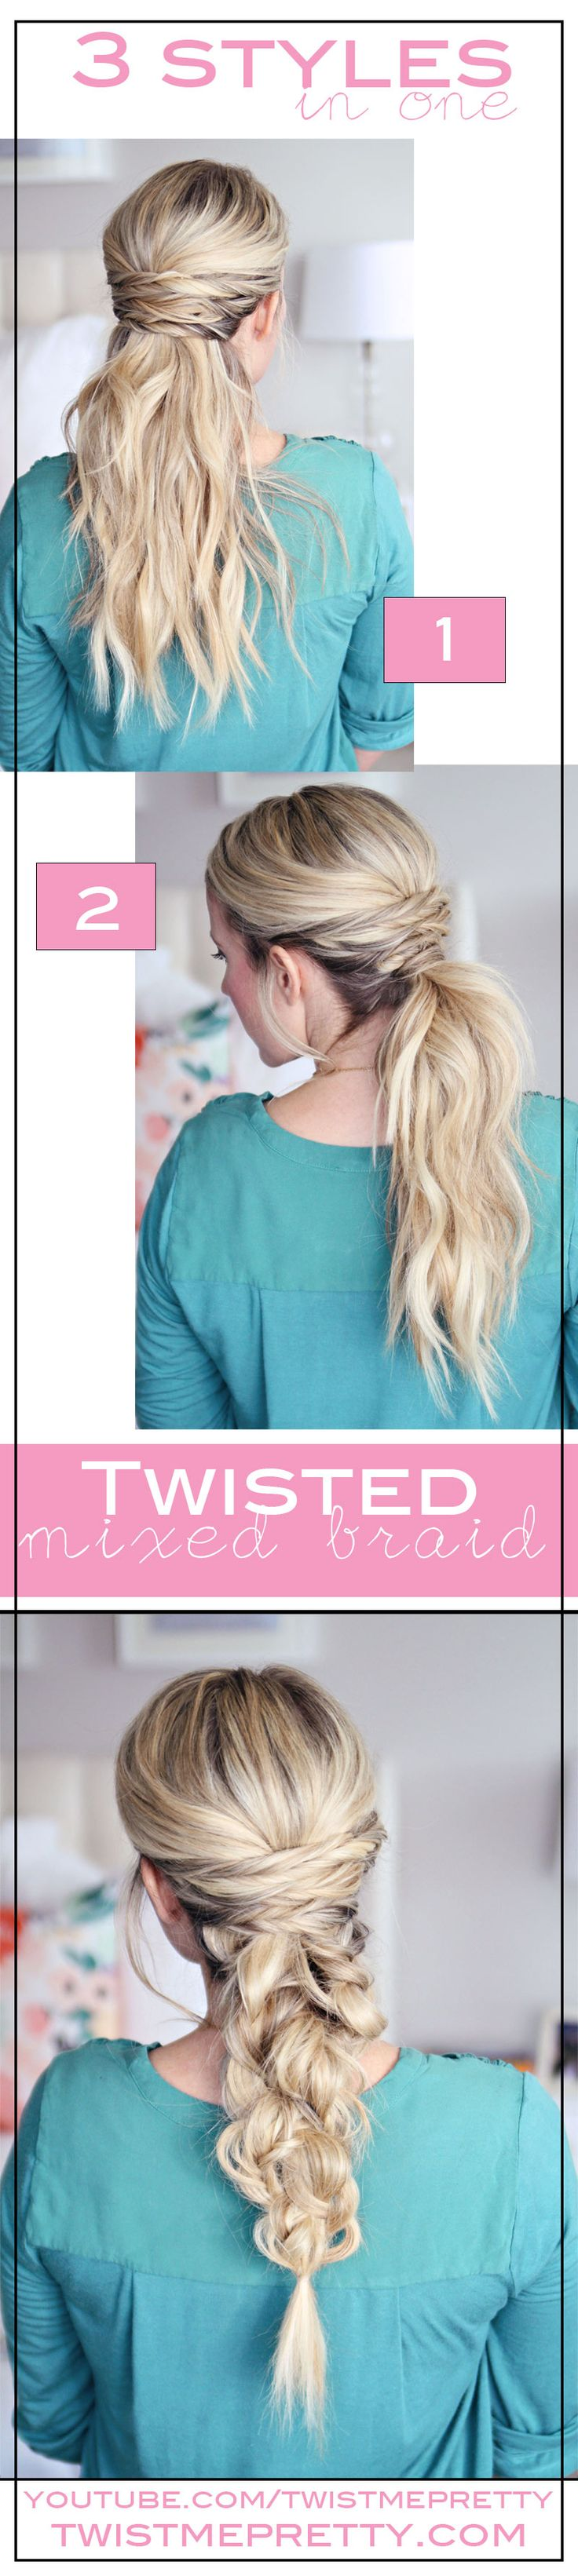 By learning one hairstyle, you've essentially learned two more along the way. And who doesn't love learning extra hairstyles?! Tutorial by Twist Me Pretty!